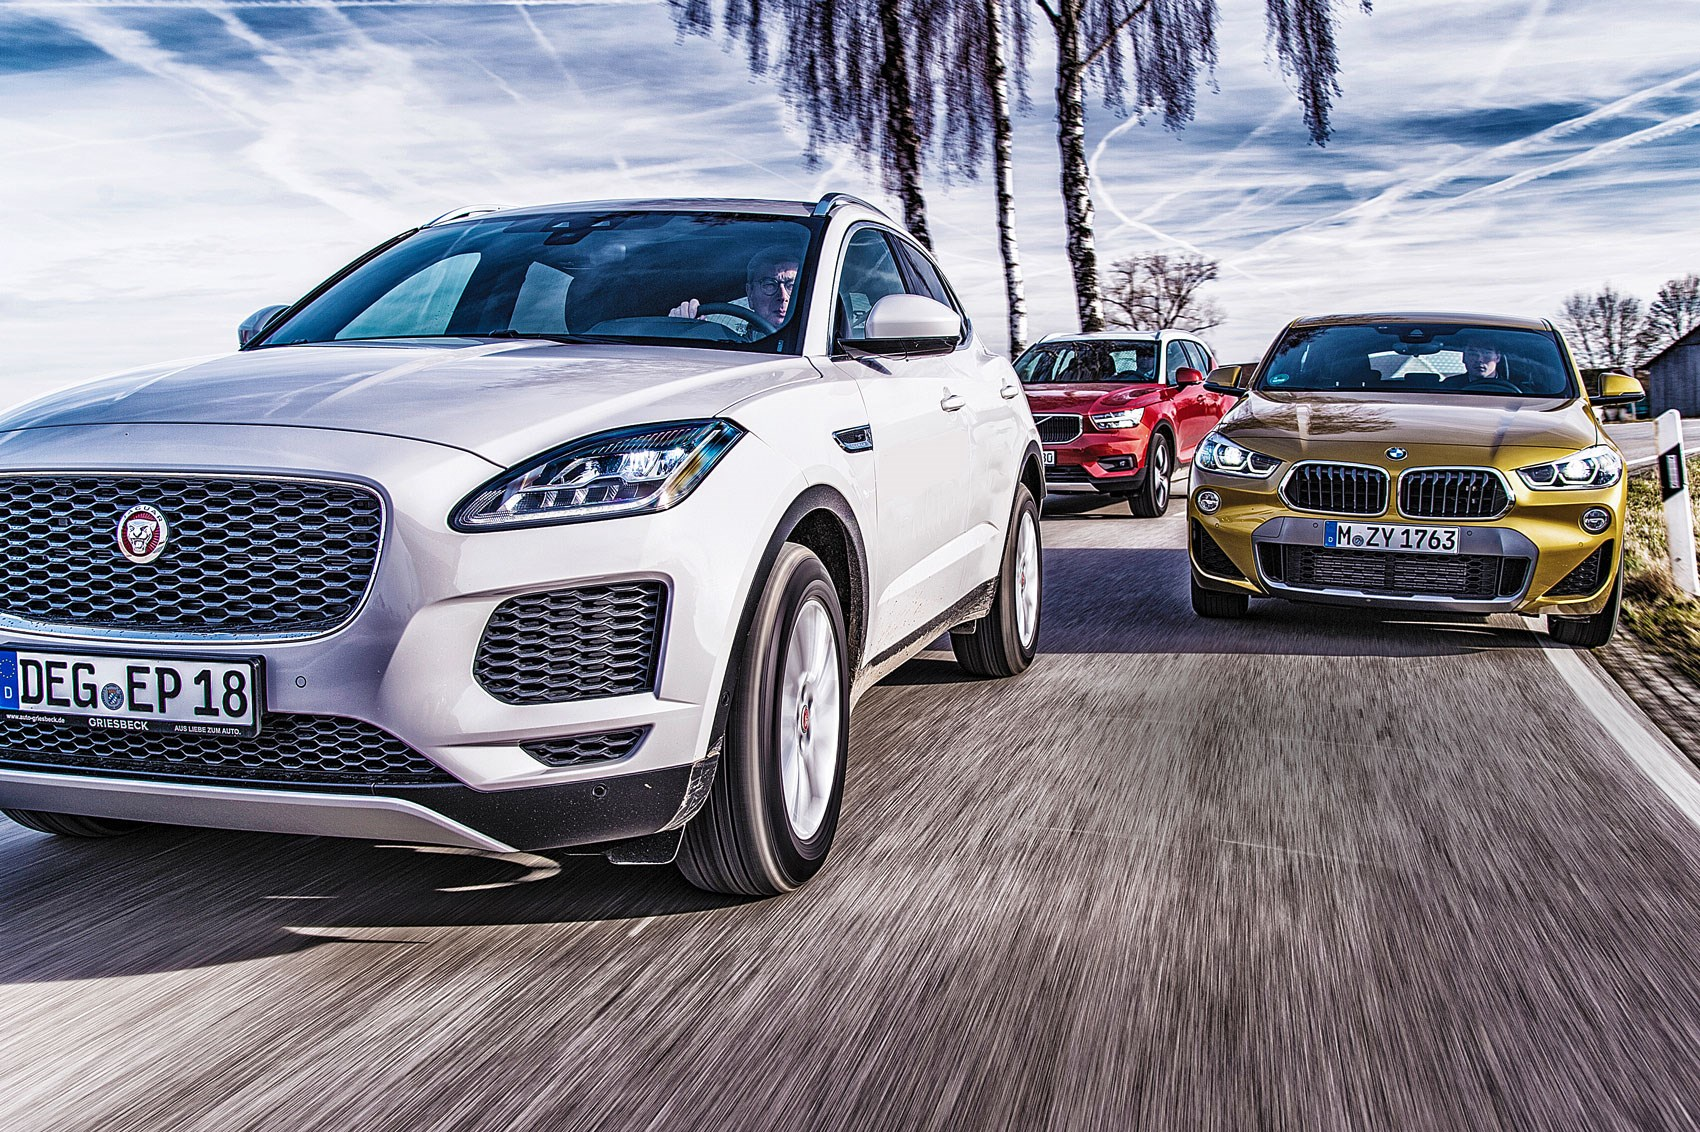 Bmw X2 Vs Jaguar E Pace Volvo Xc40 Who Makes The Best Premium Baby Suv